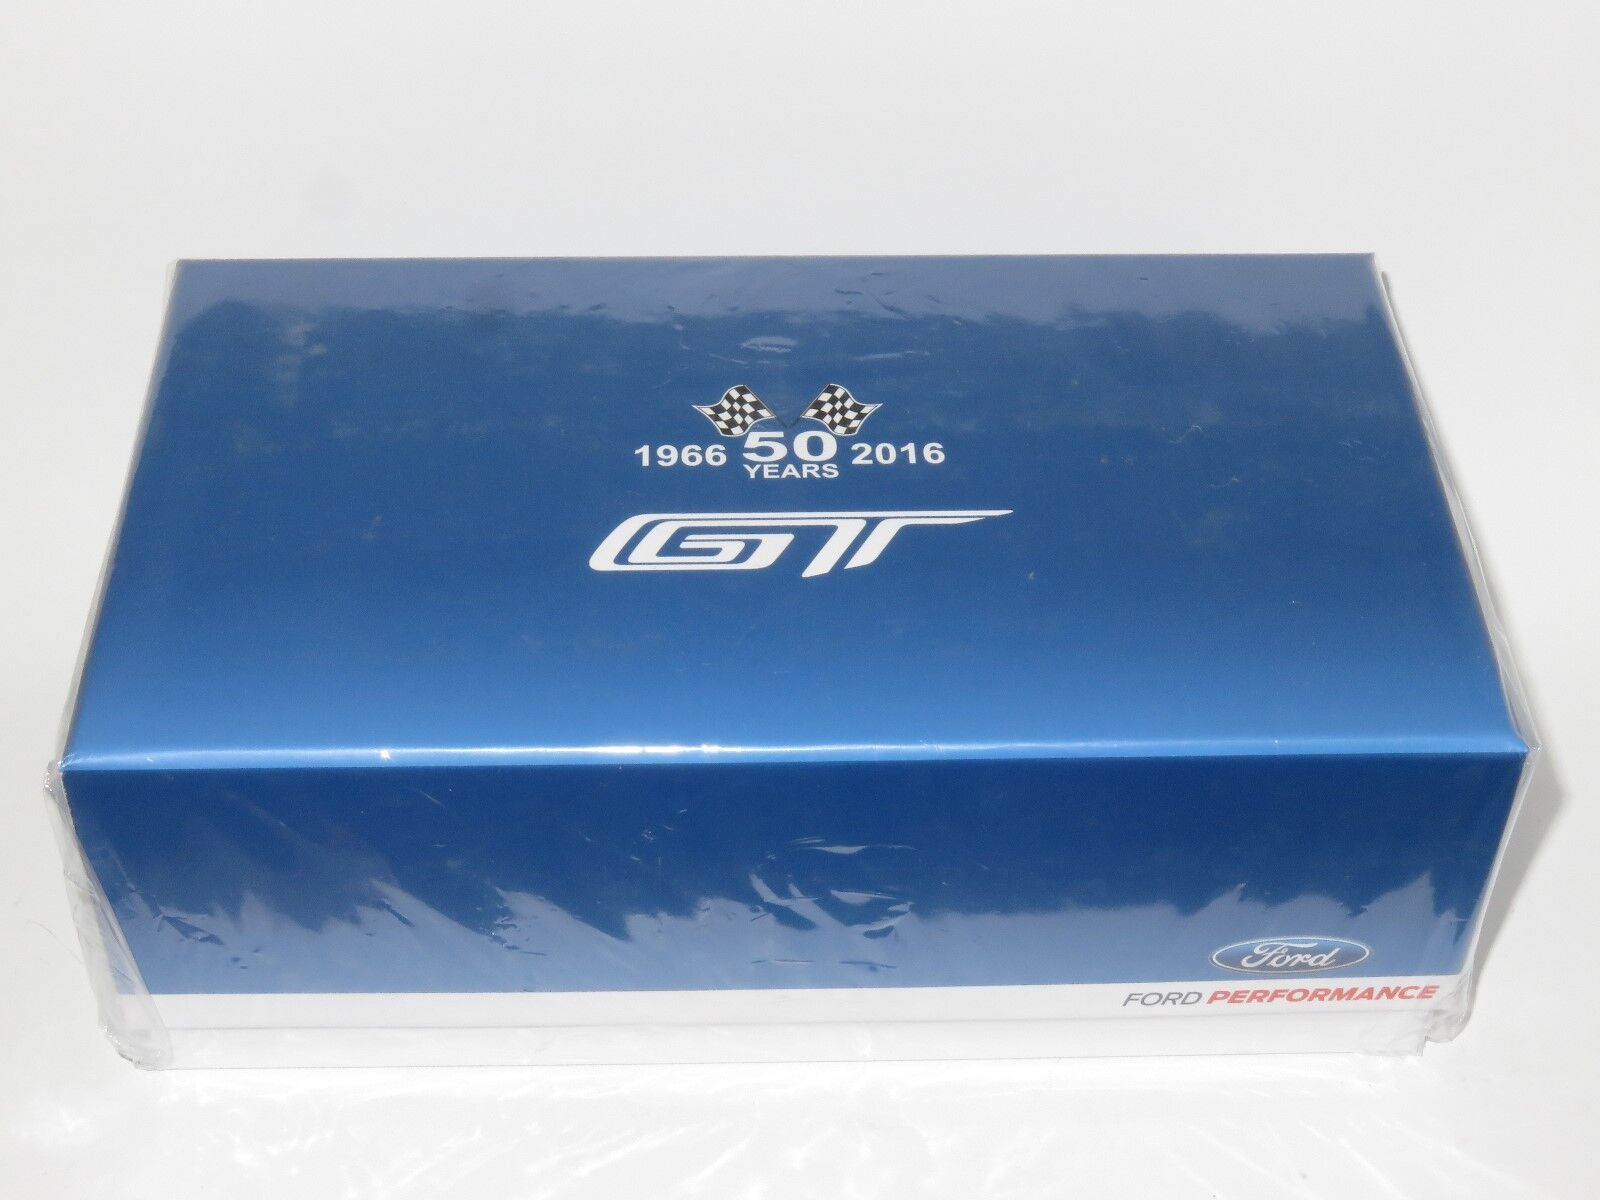 1 43 Ford Performance Ford GT 50th Anniversary Le Mans Set 1966-2016